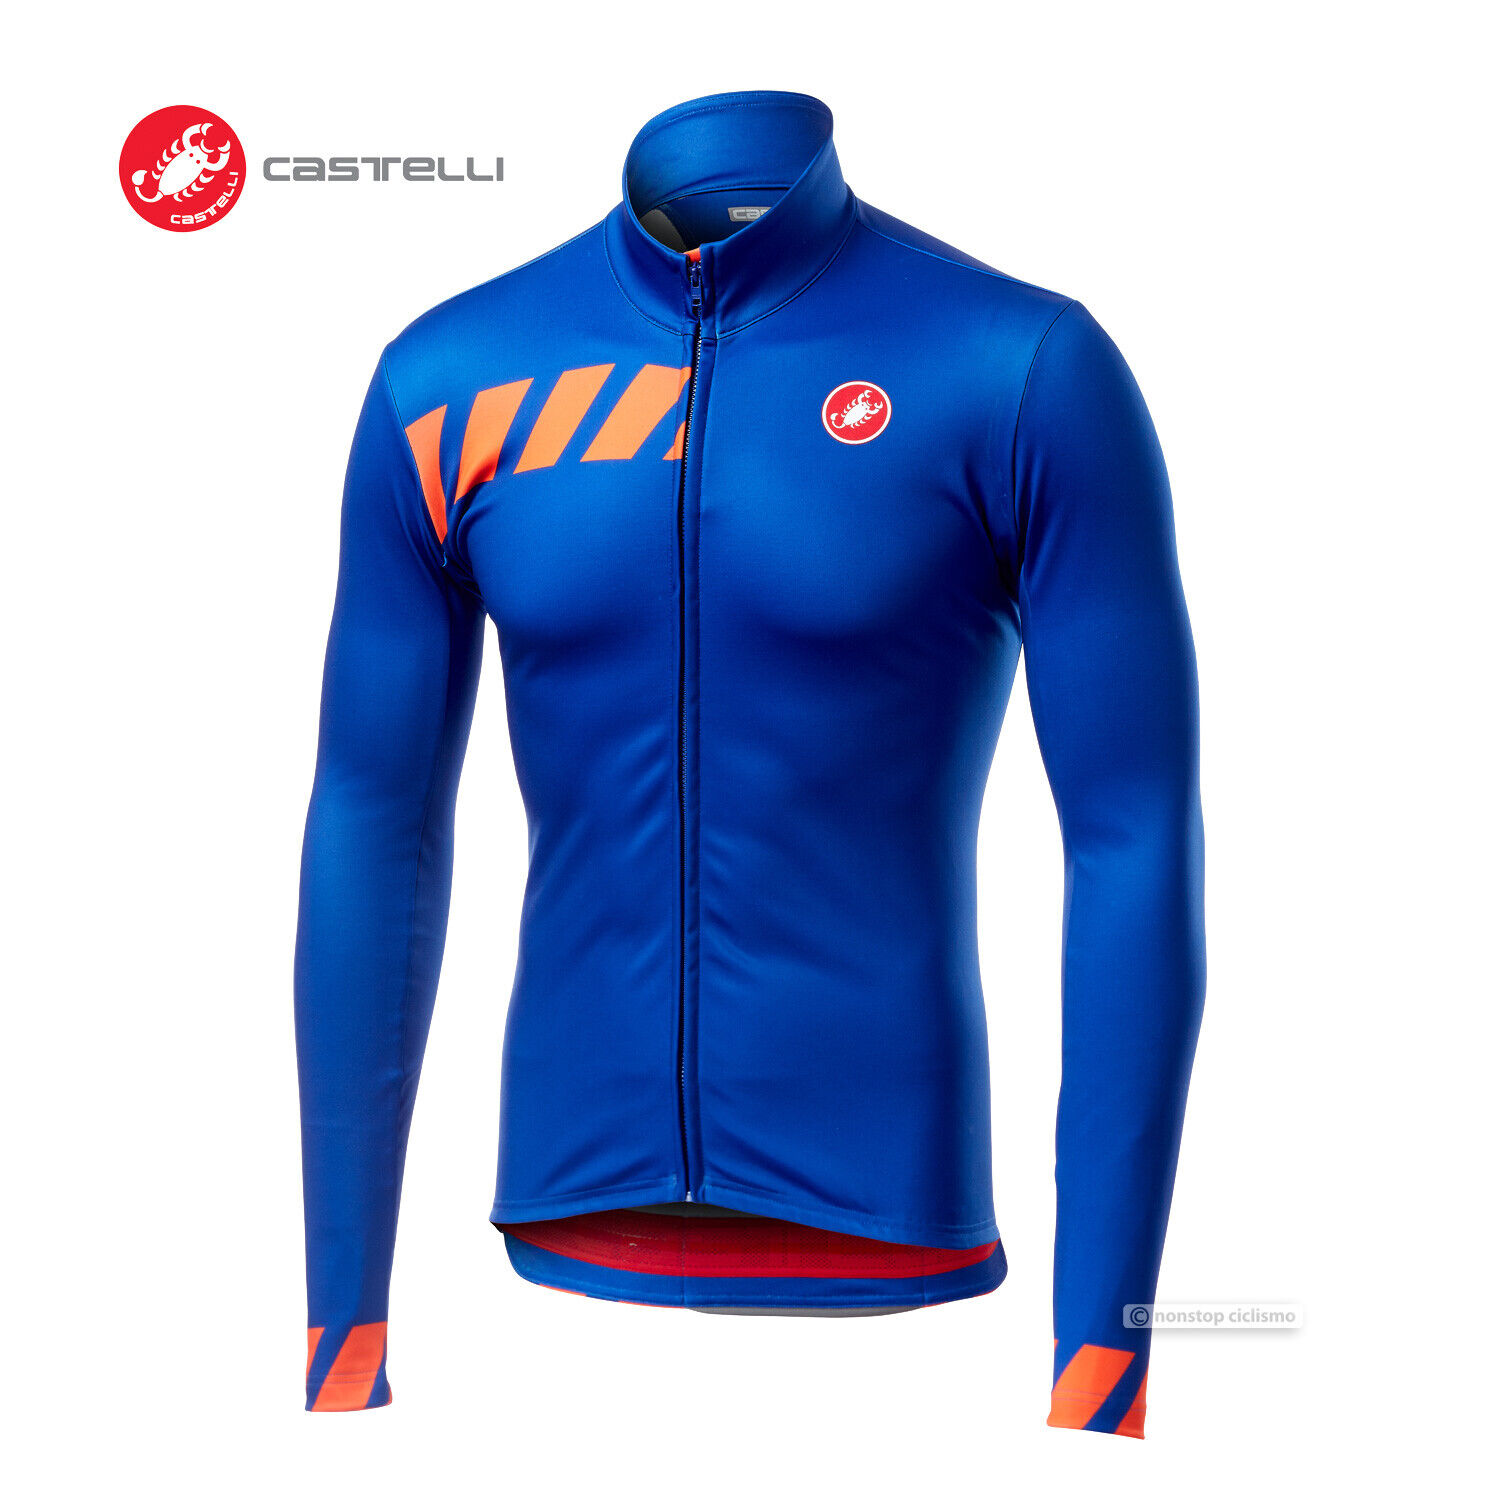 NEW Castelli PISA Thermal Long Sleeve Full Zip Cycling Jersey   SURF Blau